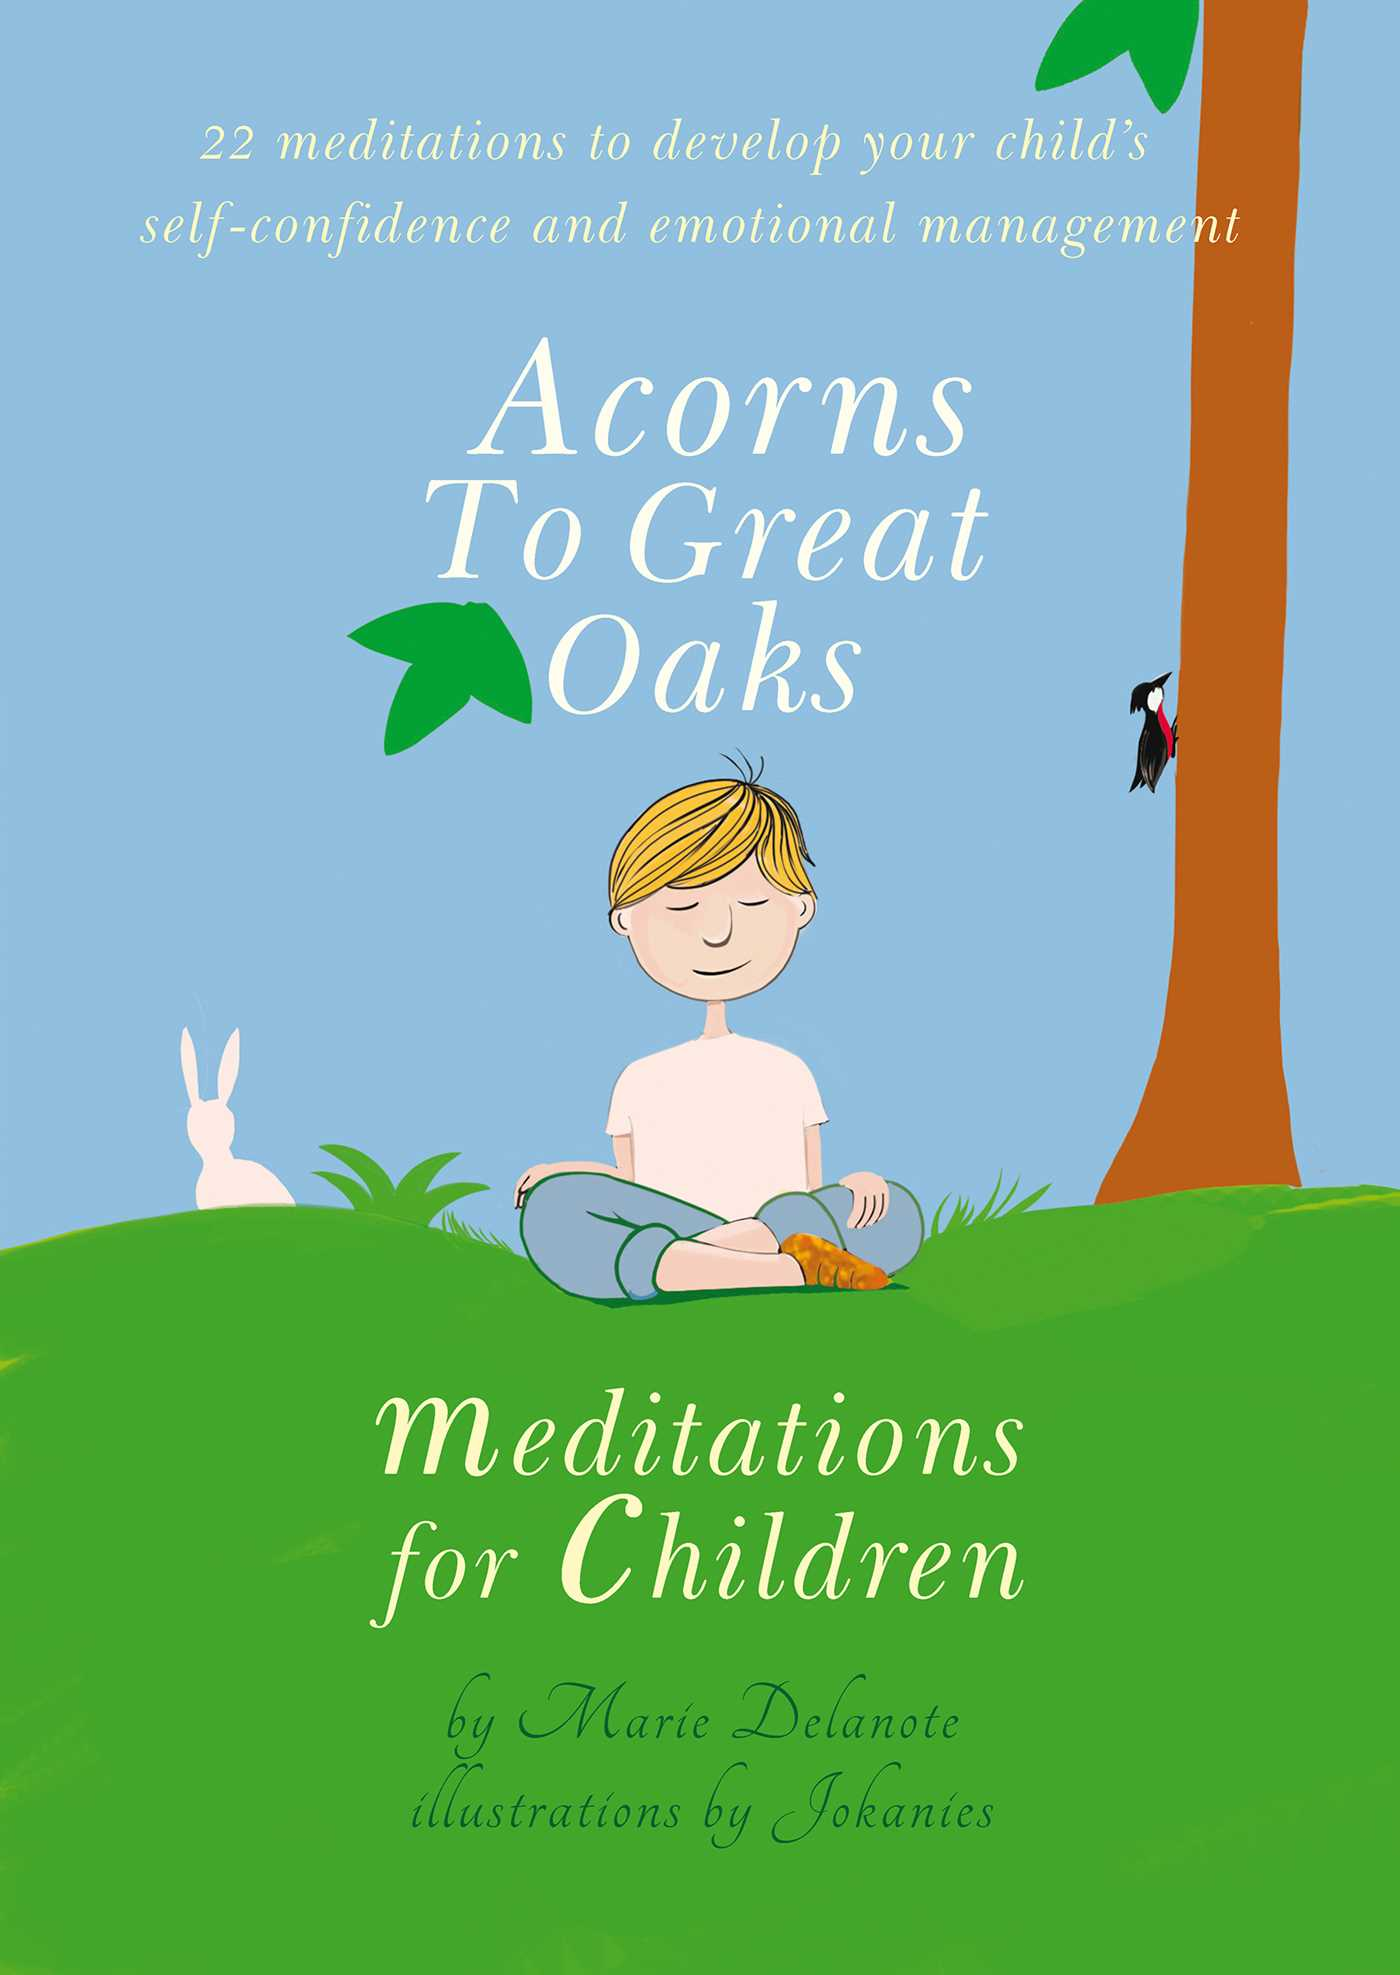 Acorns to great oaks 9781844097210 hr